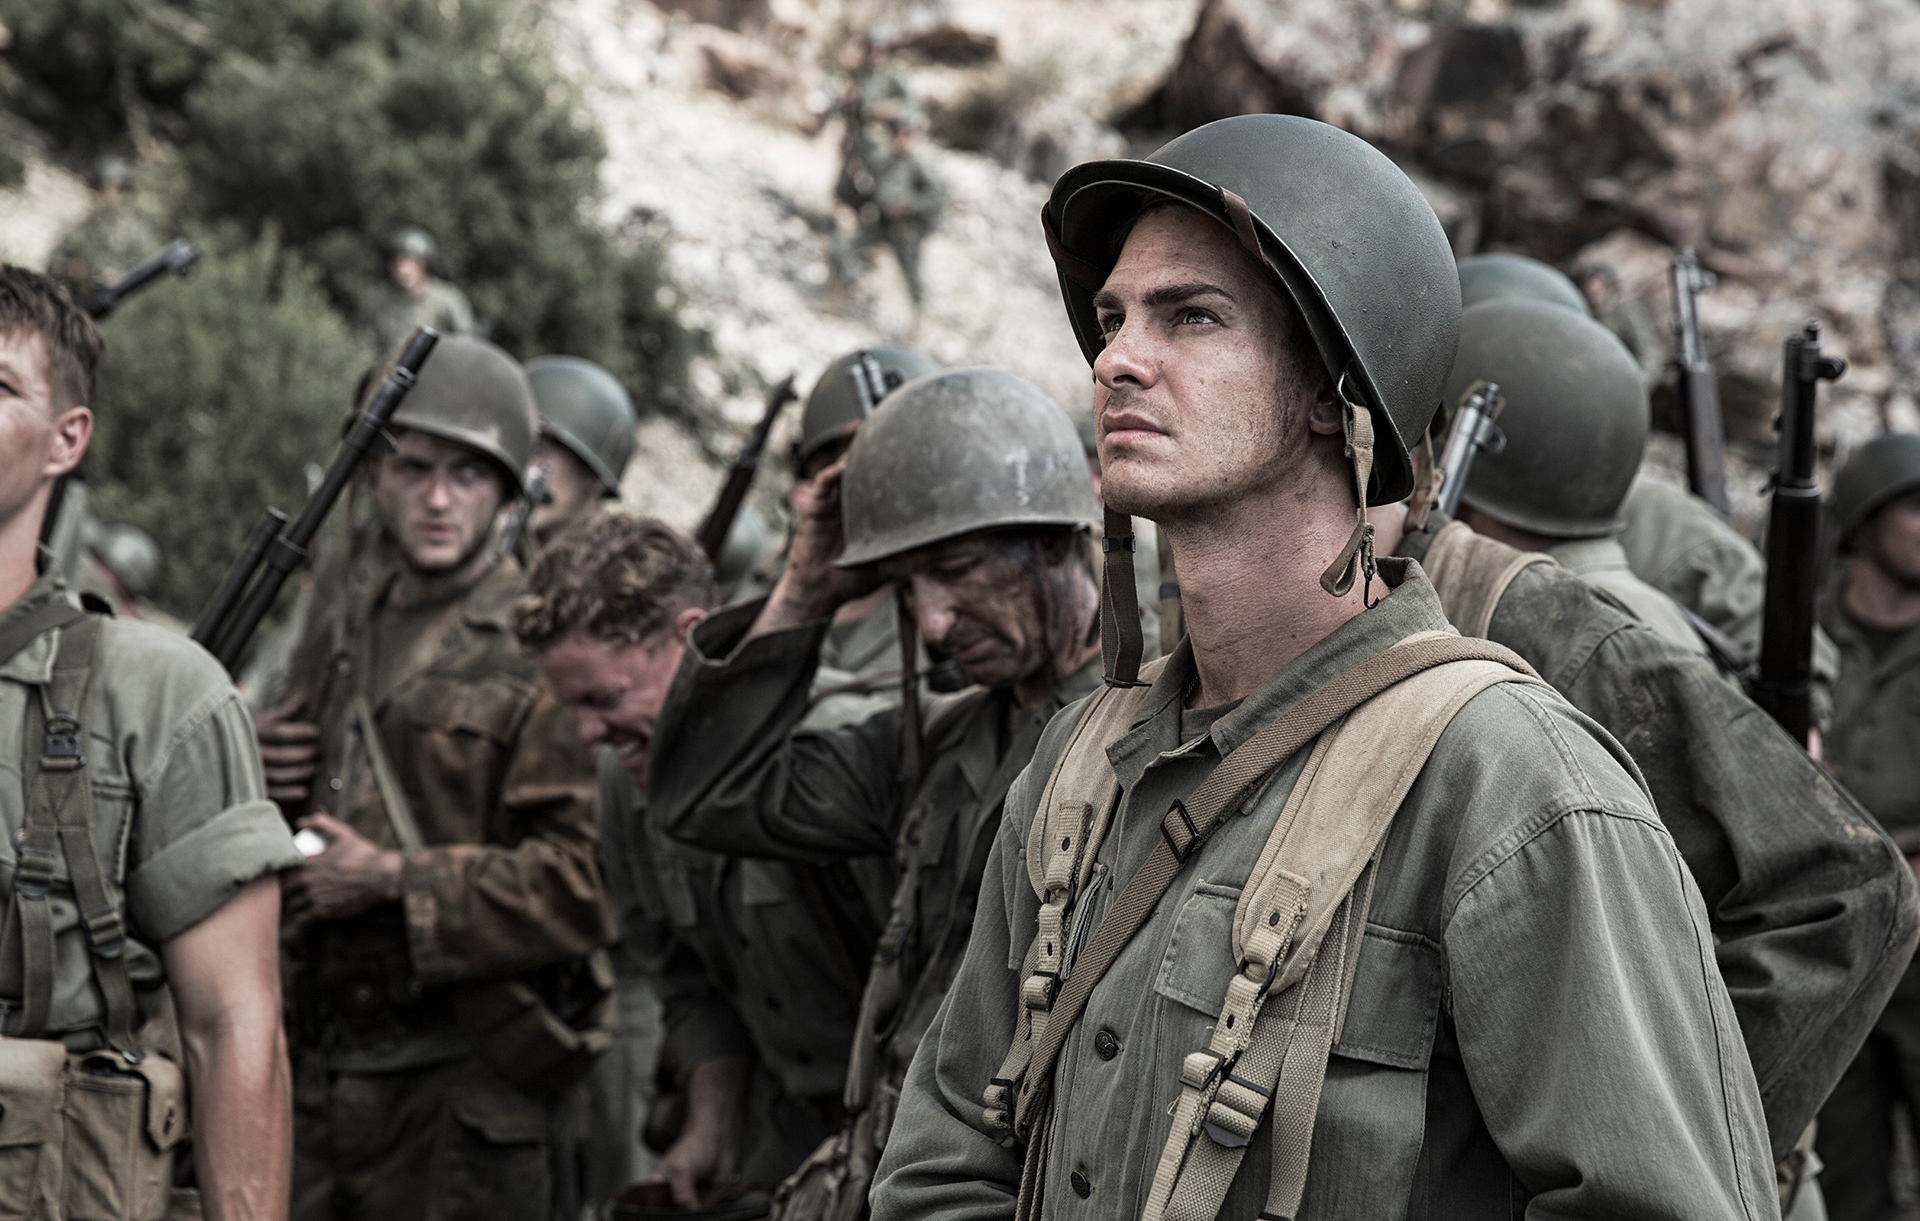 how can i watch hacksaw ridge online for free